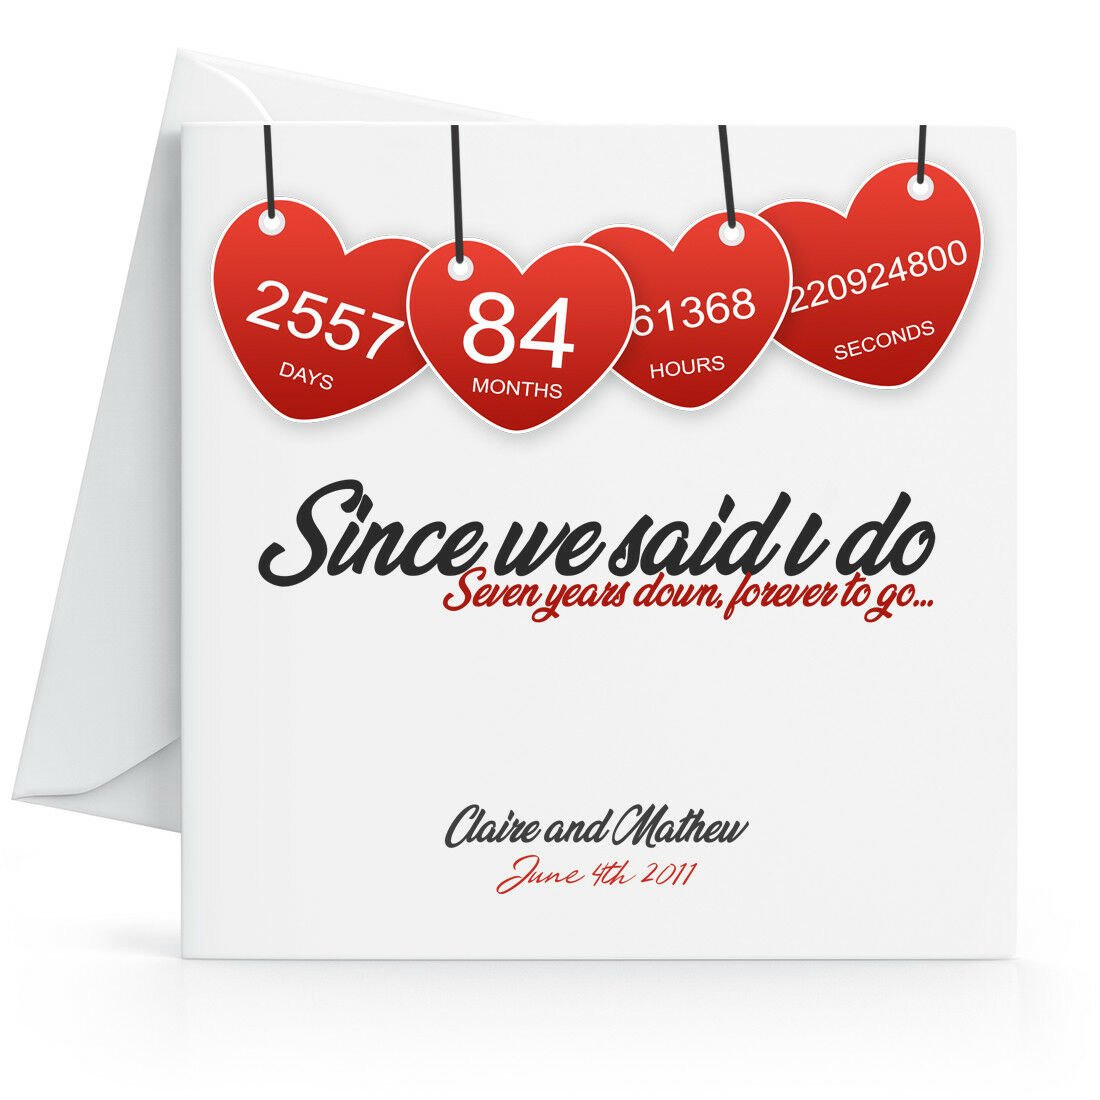 7th Wedding Anniversary.Details About Personalised 7th Wedding Anniversary Card Printed Hearts Wife Husband Seventh